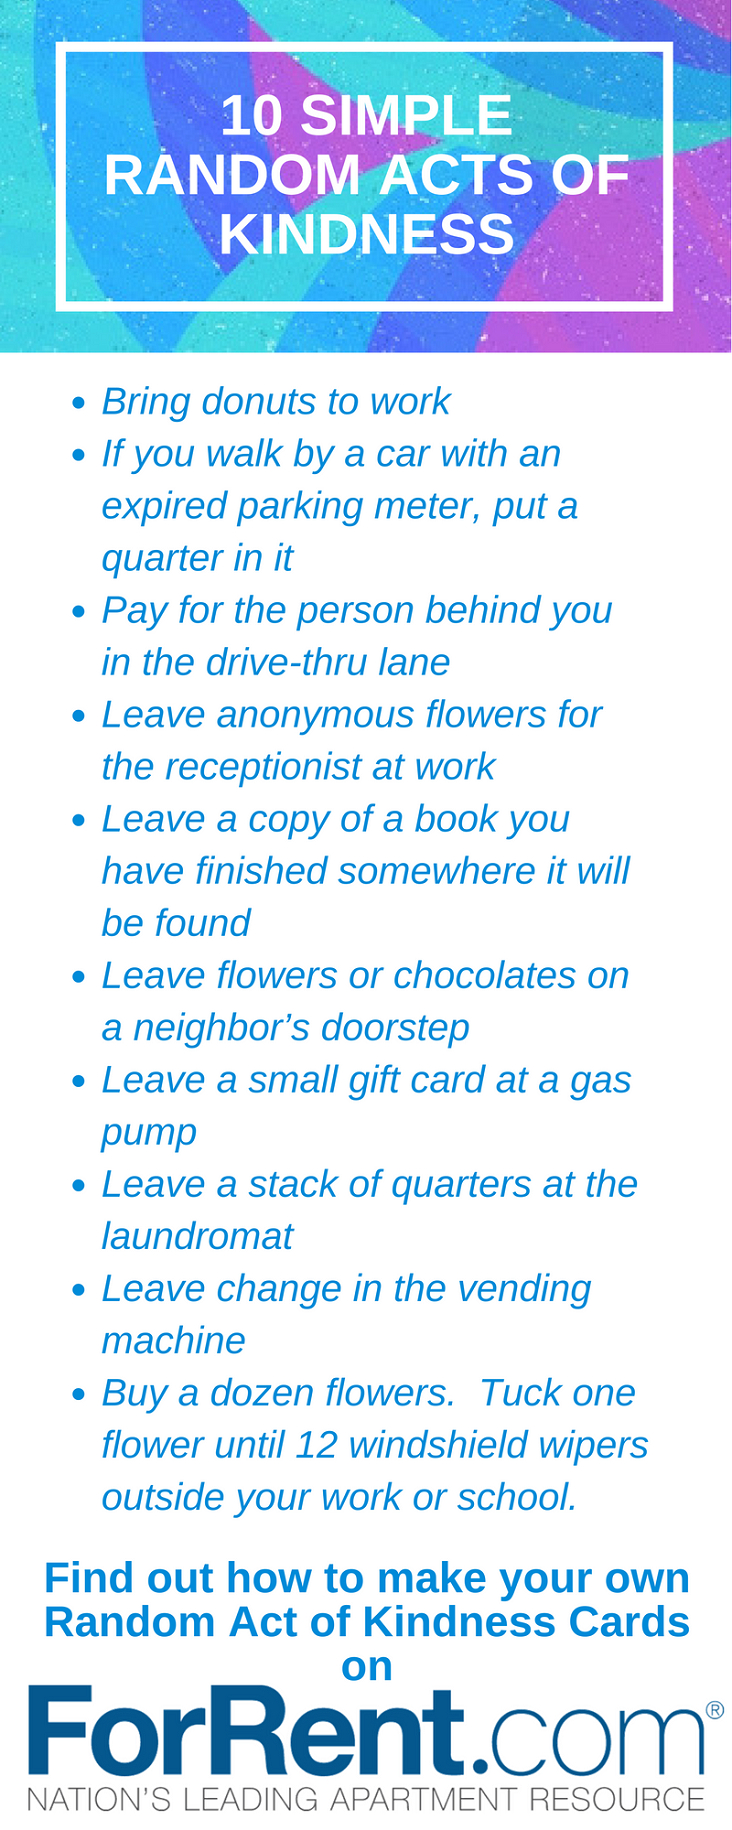 Using Canva To Make Diy Random Acts Of Kindness Cards Tips within Random Acts Of Kindness Cards Templates